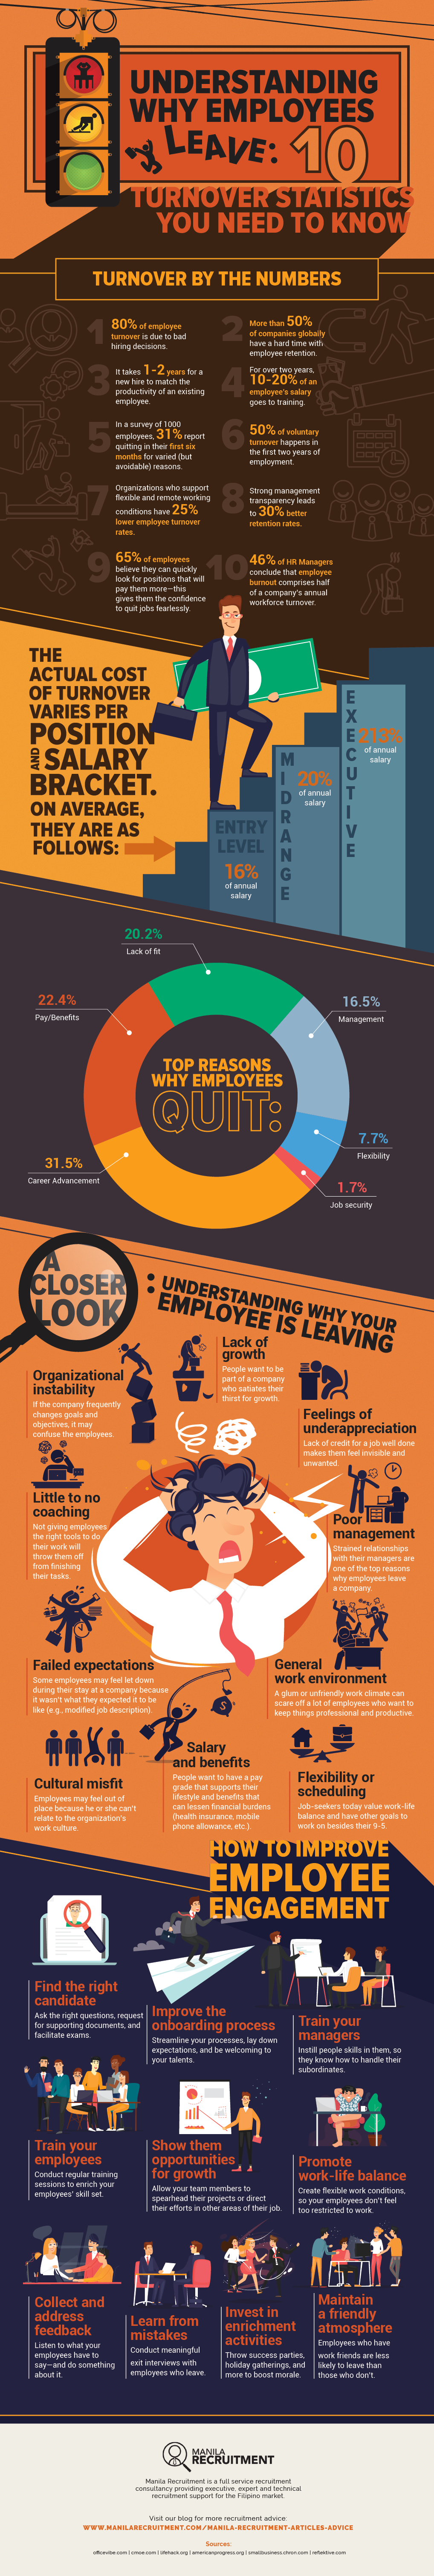 Understanding Why Employees Leave_ 10 Turnover Statistics You Need to Know